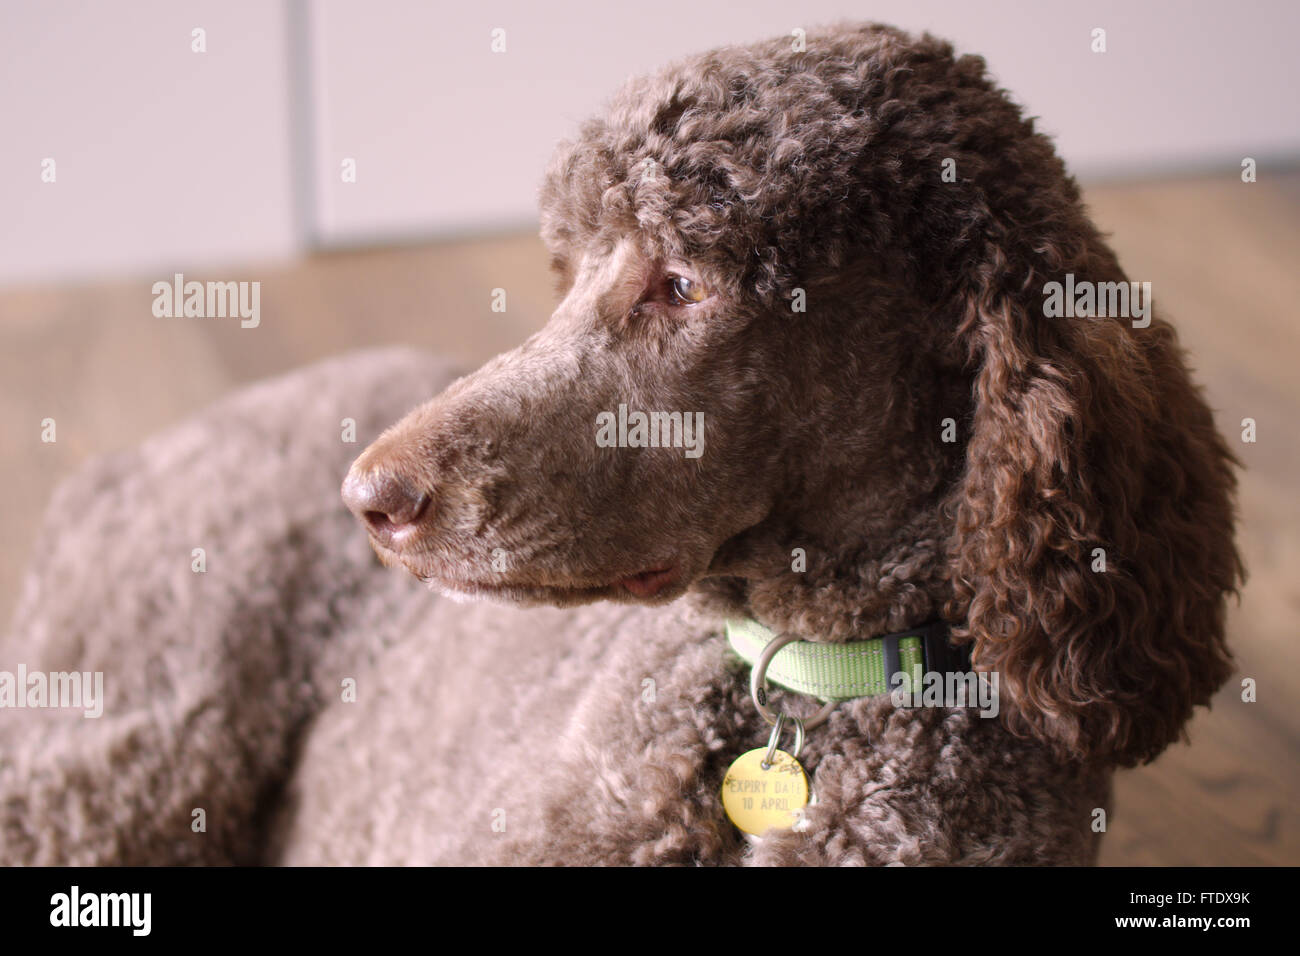 Standard Poodle - Stock Image